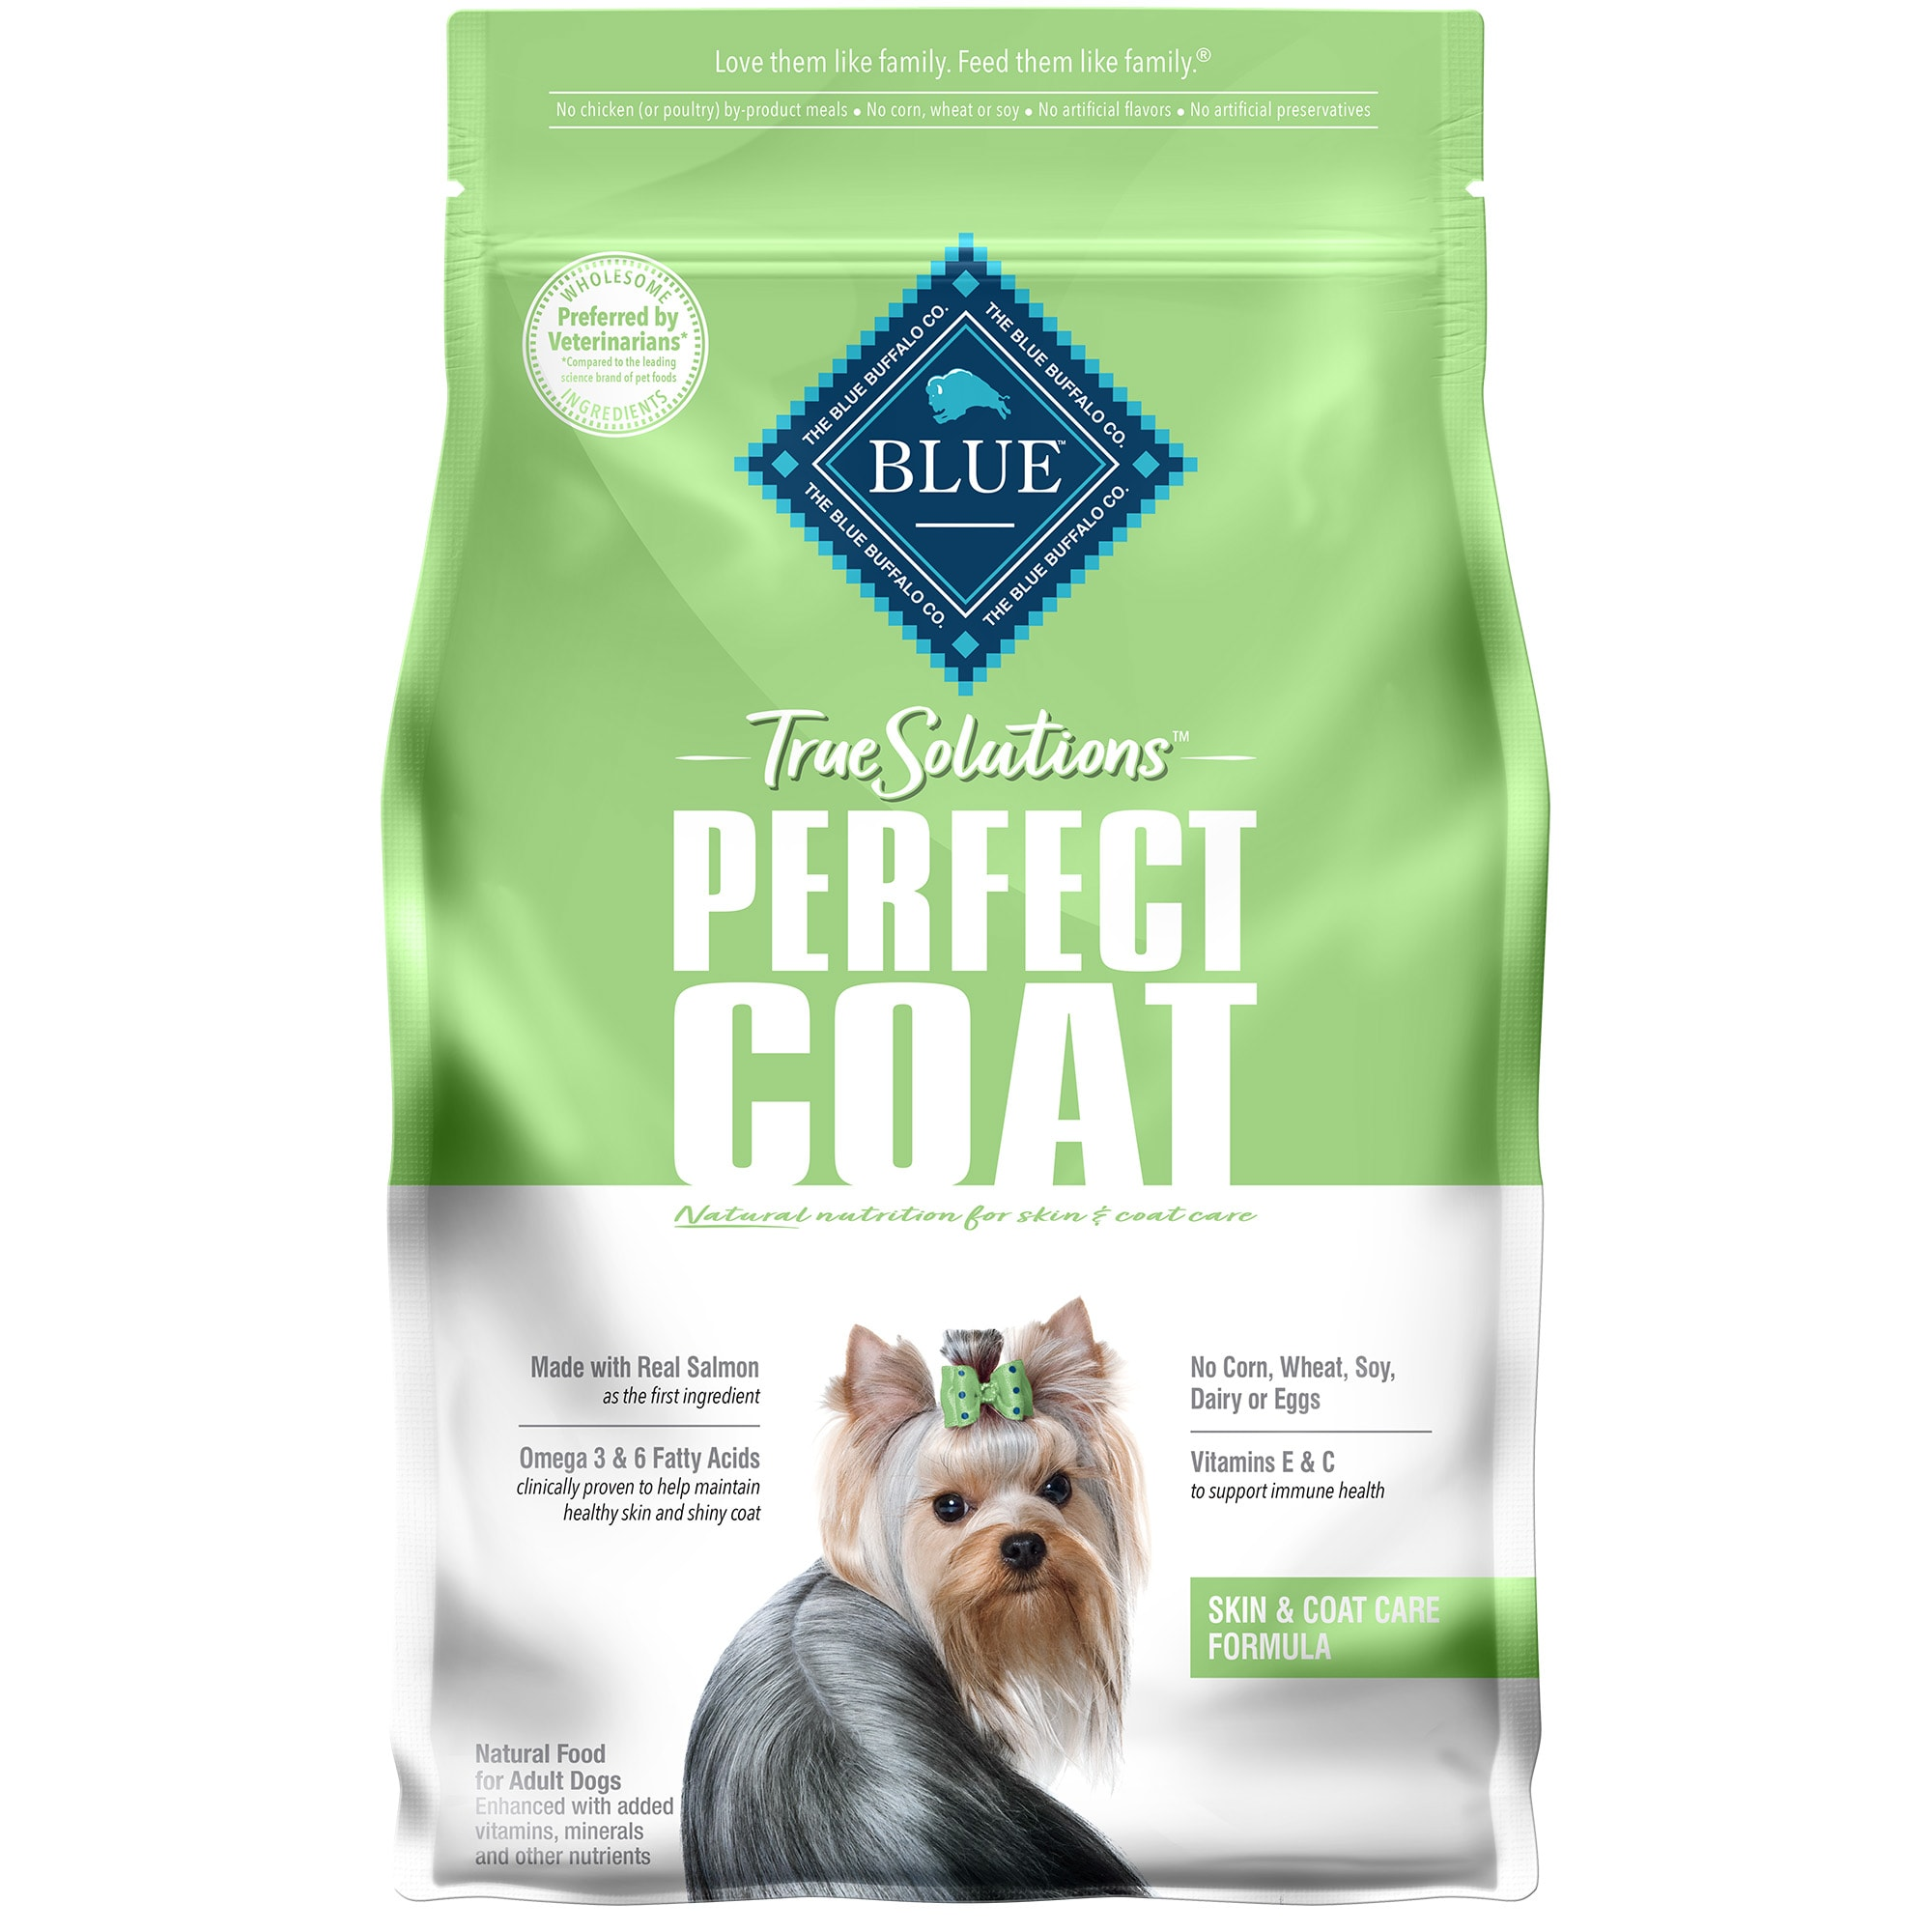 Blue Buffalo True Solutions Perfect Coat Natural Skin & Coat Care Salmon Flavor Adult Dry Dog Food, 4 lbs.